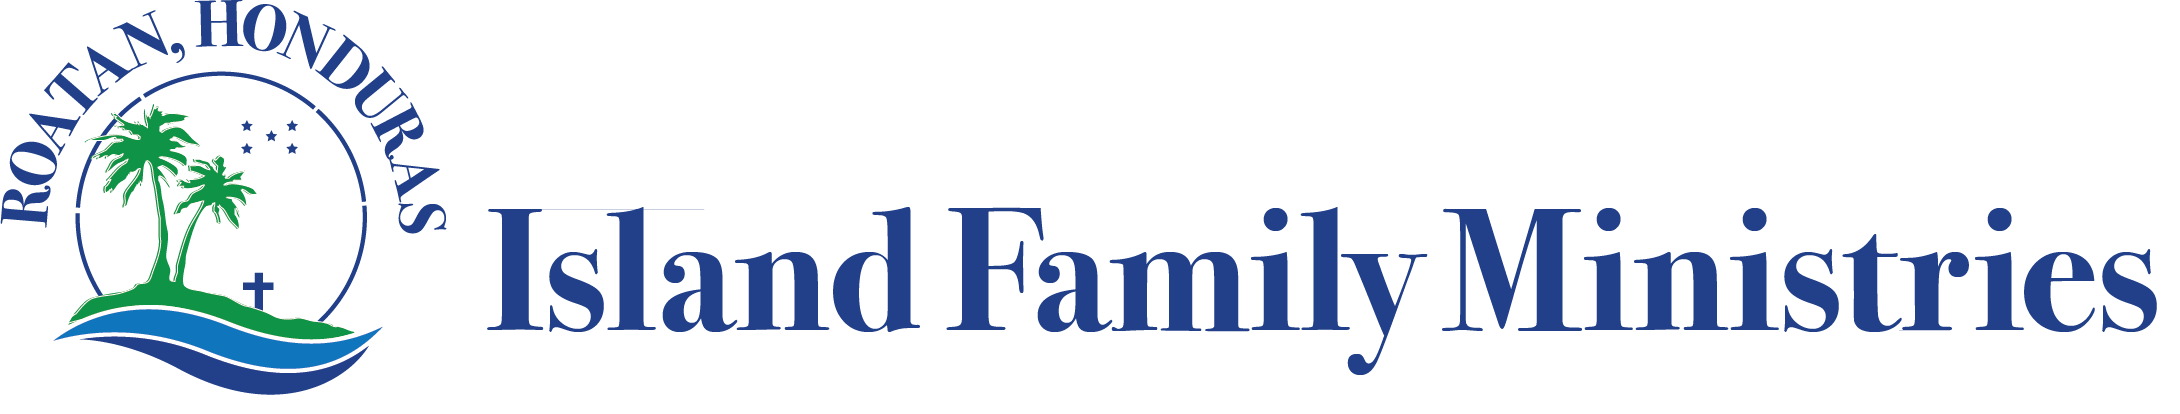 Island Family Ministries